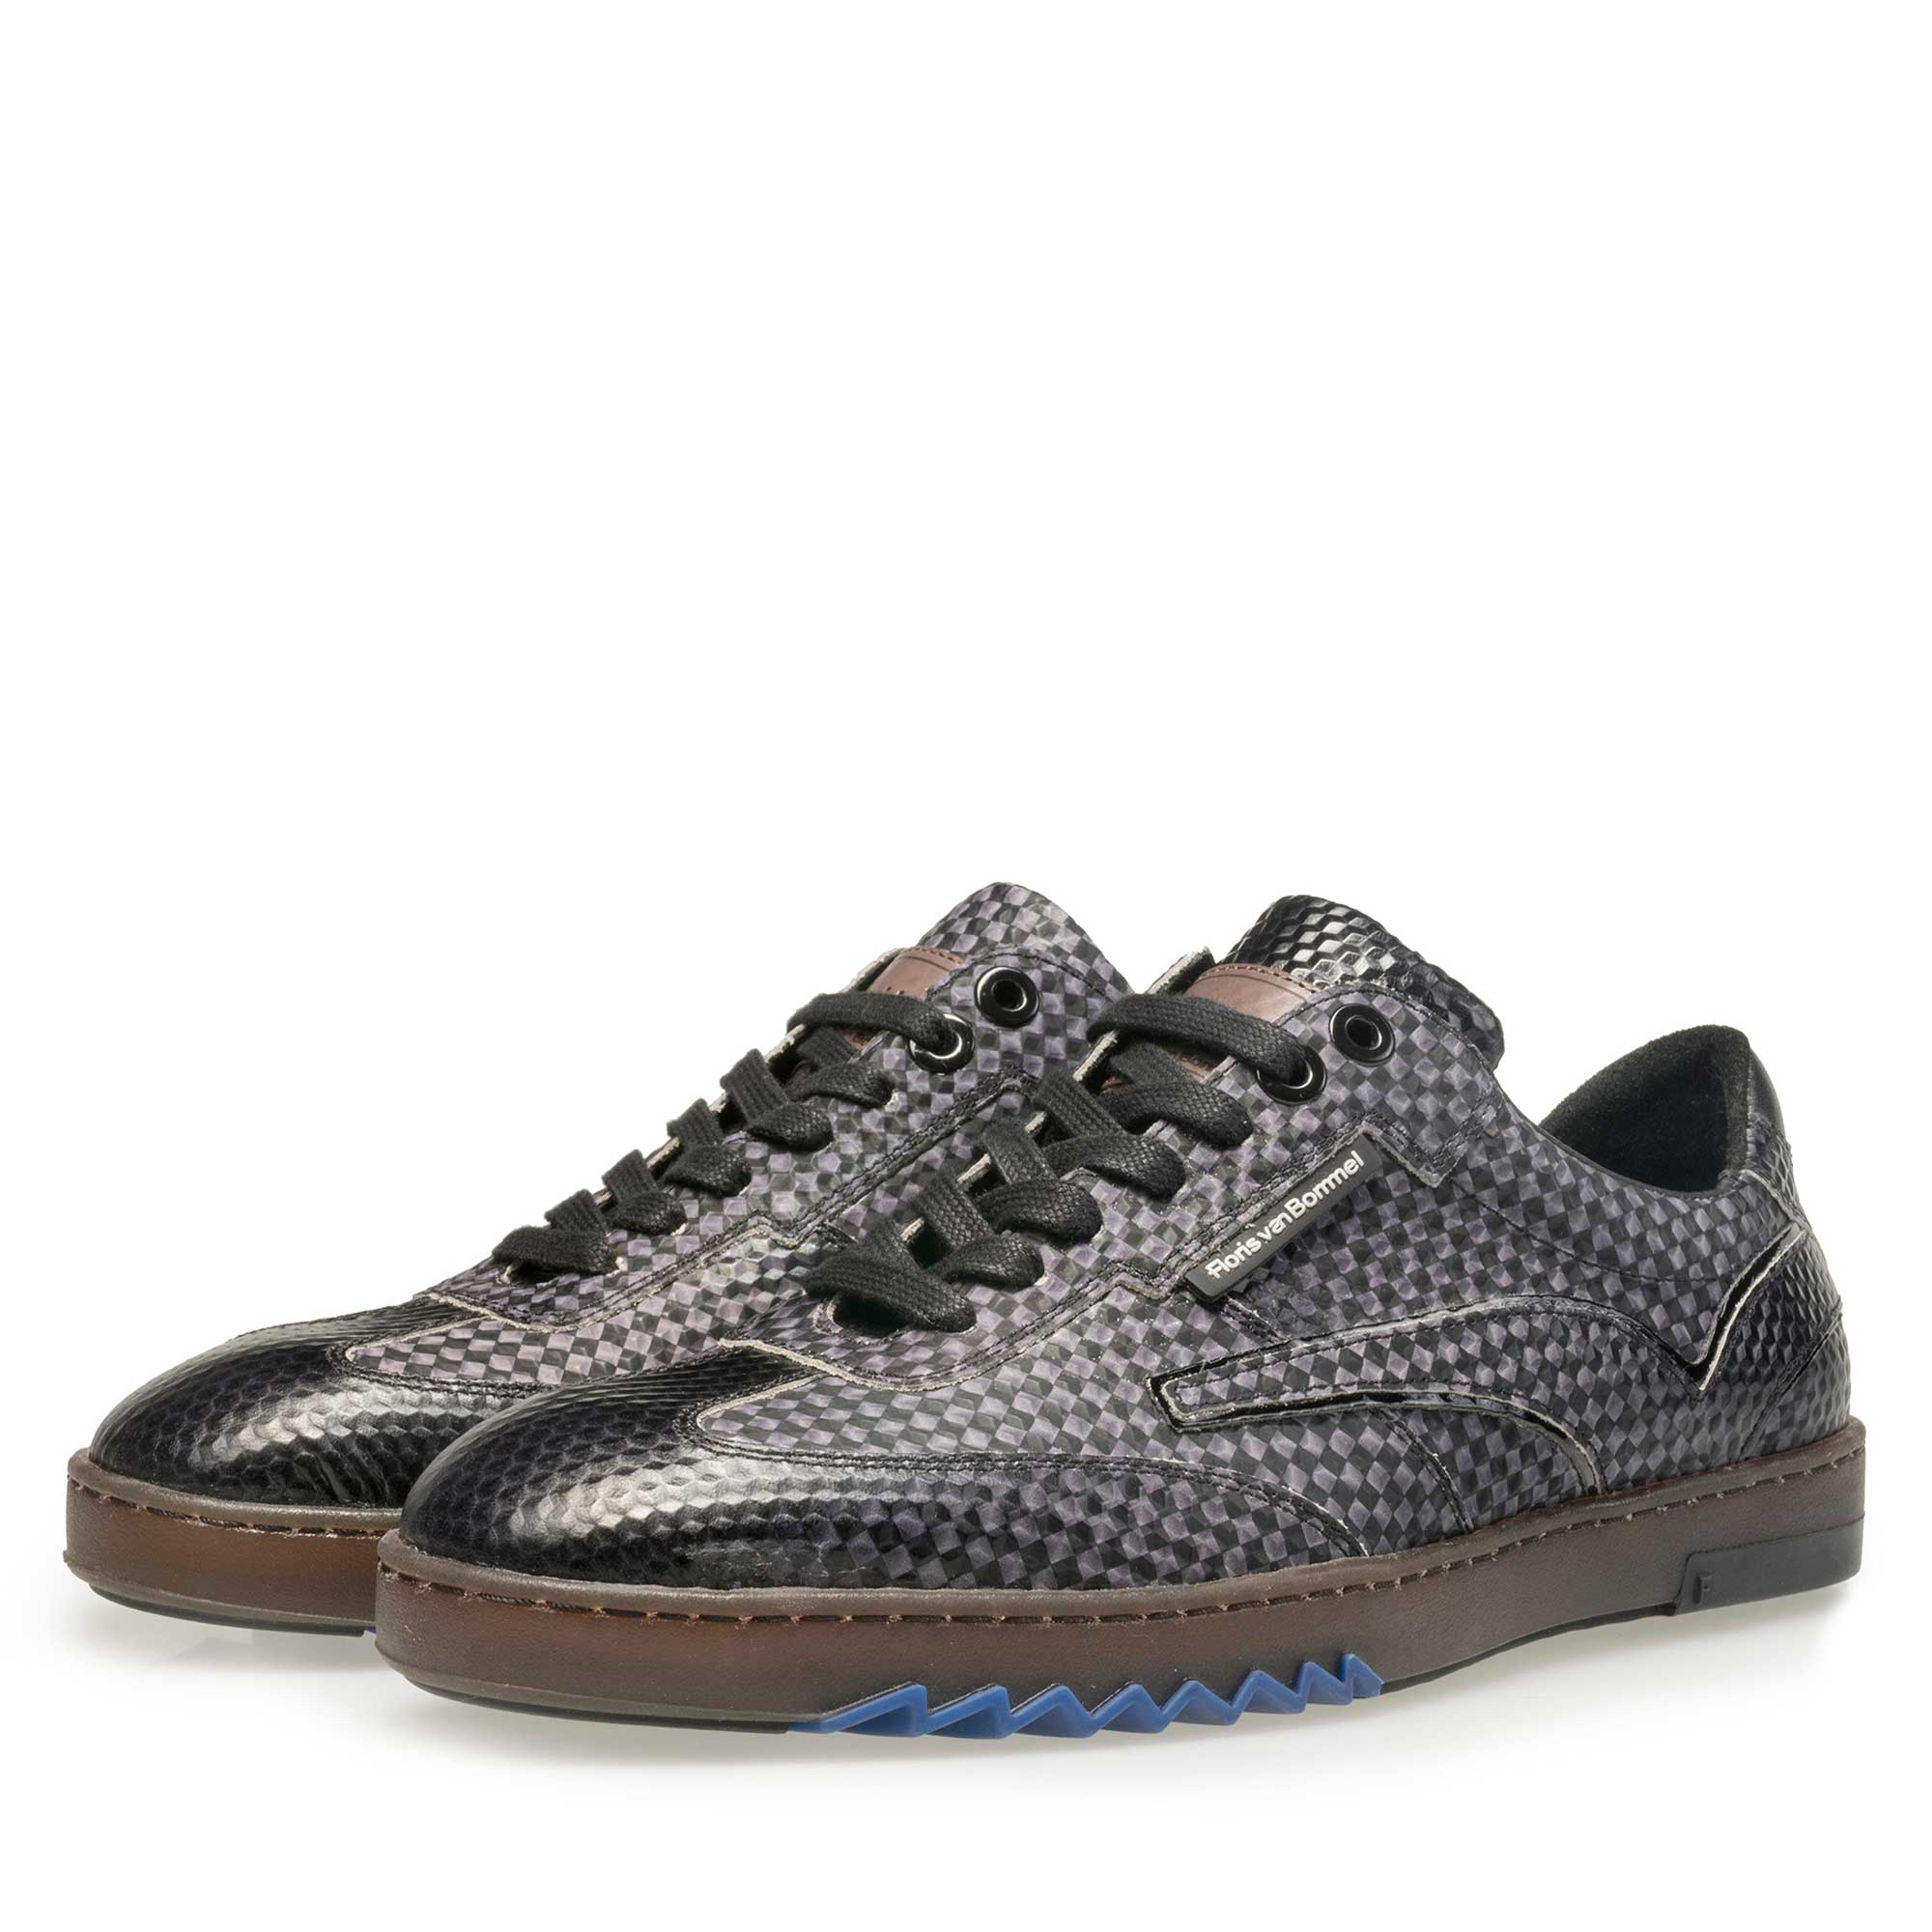 16074/23 - Floris van Bommel men's grey sneaker finished with a black print